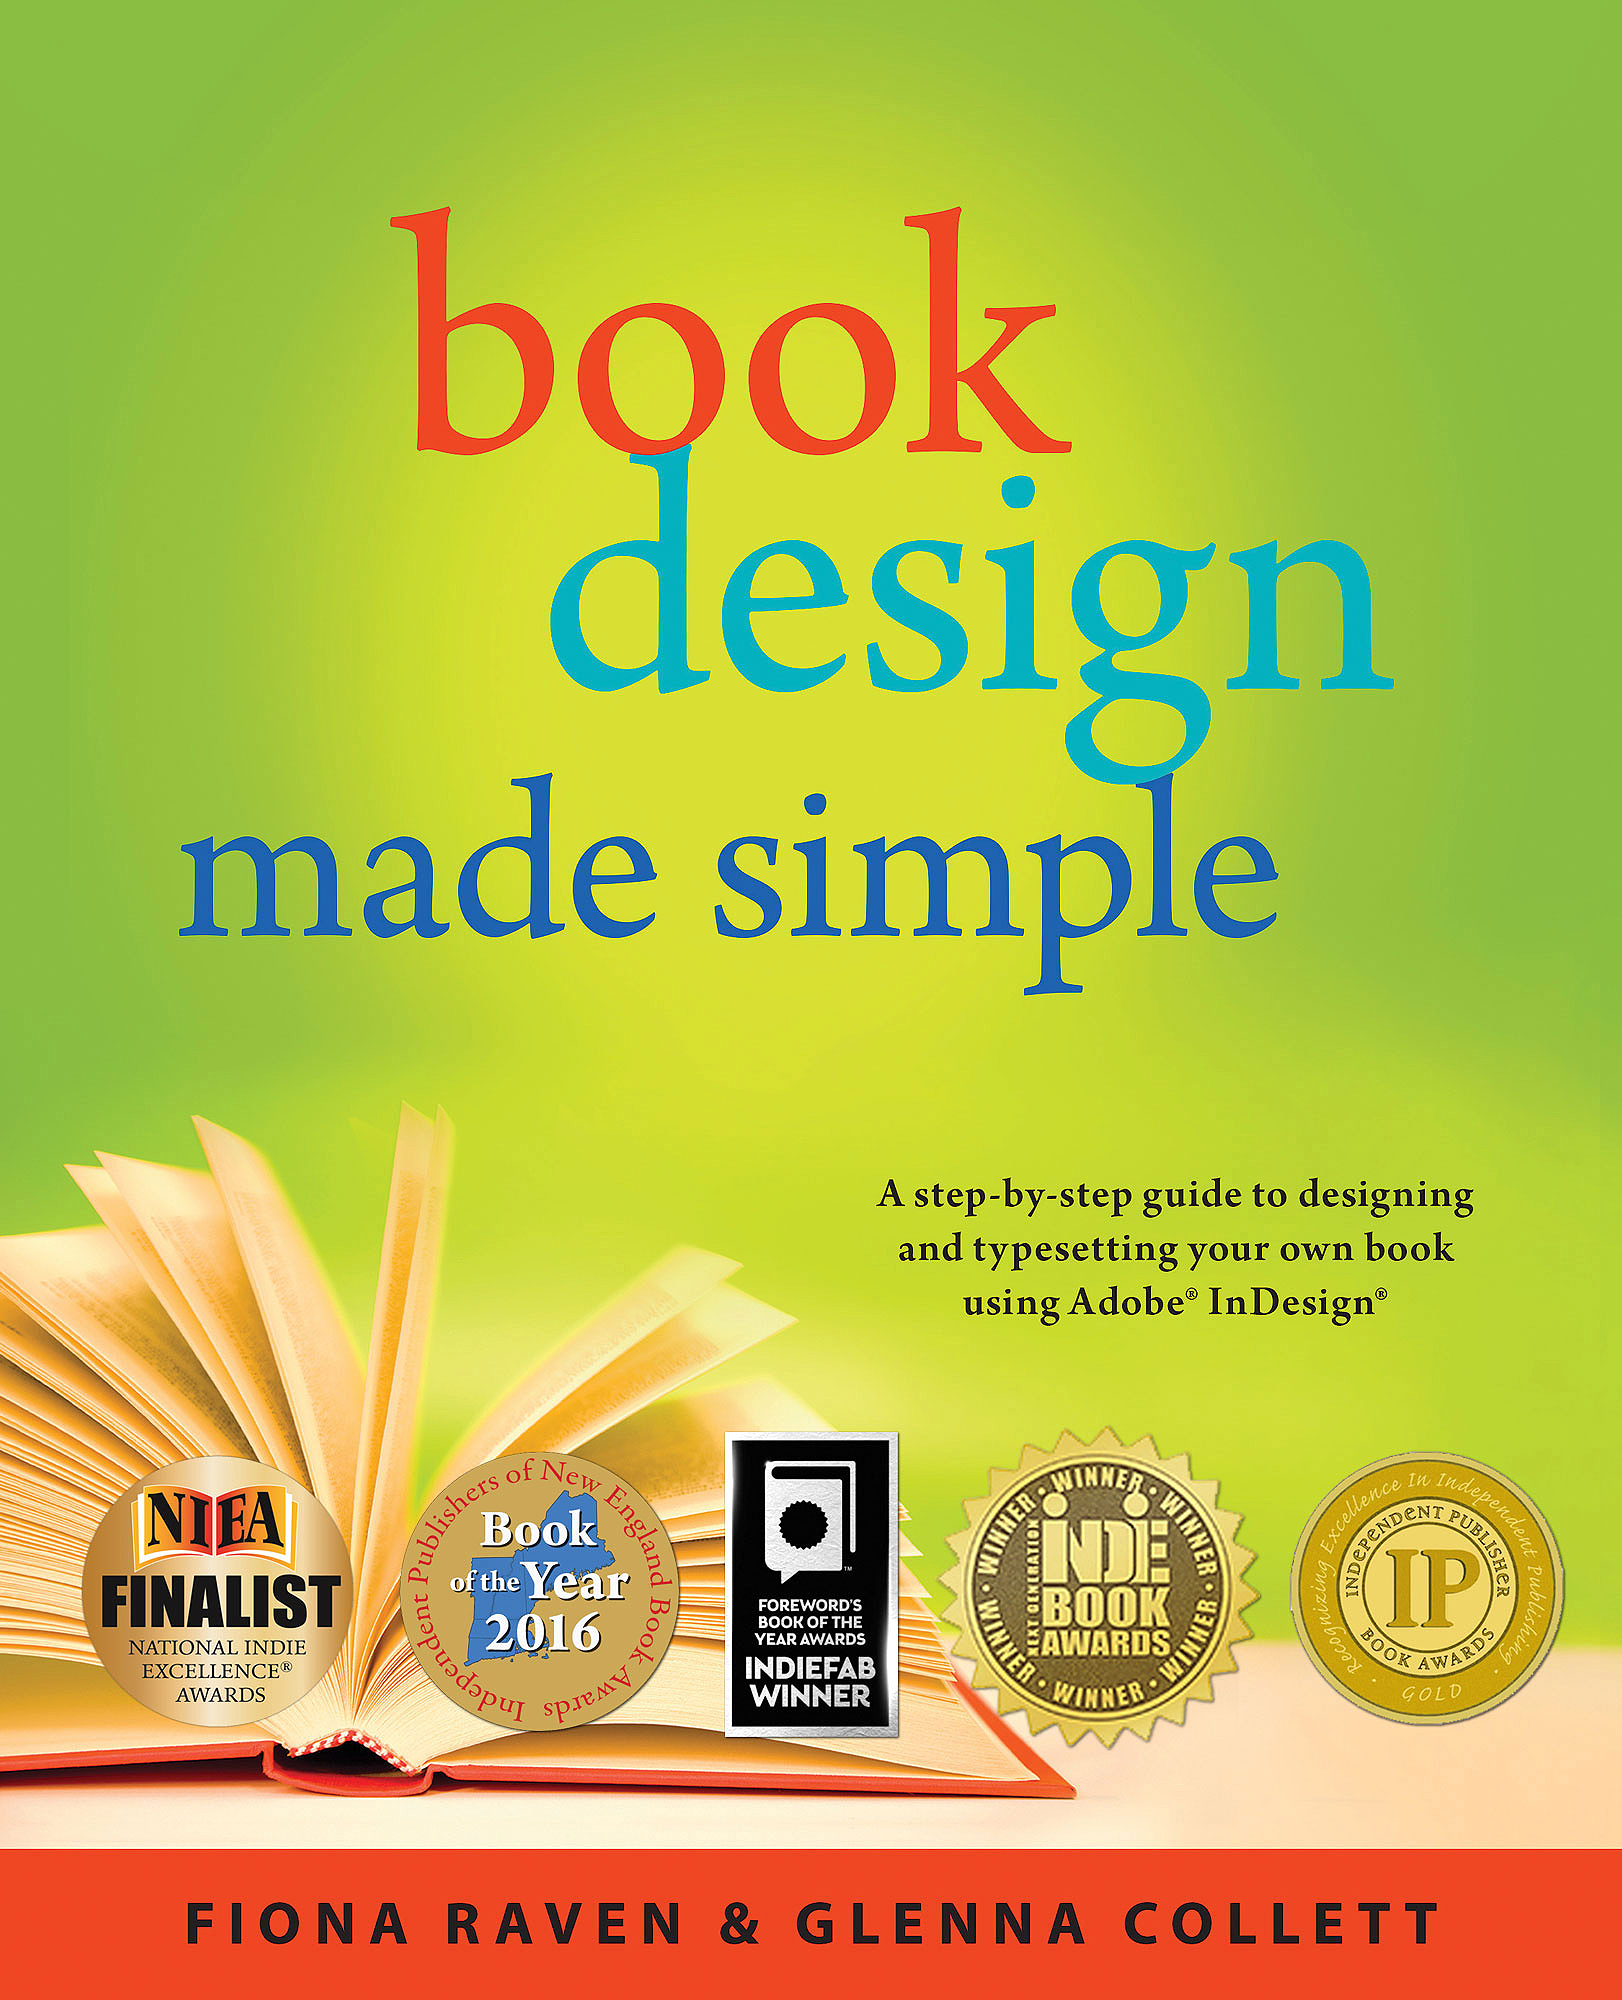 book-design-made-simple_5medals_1622x2000px